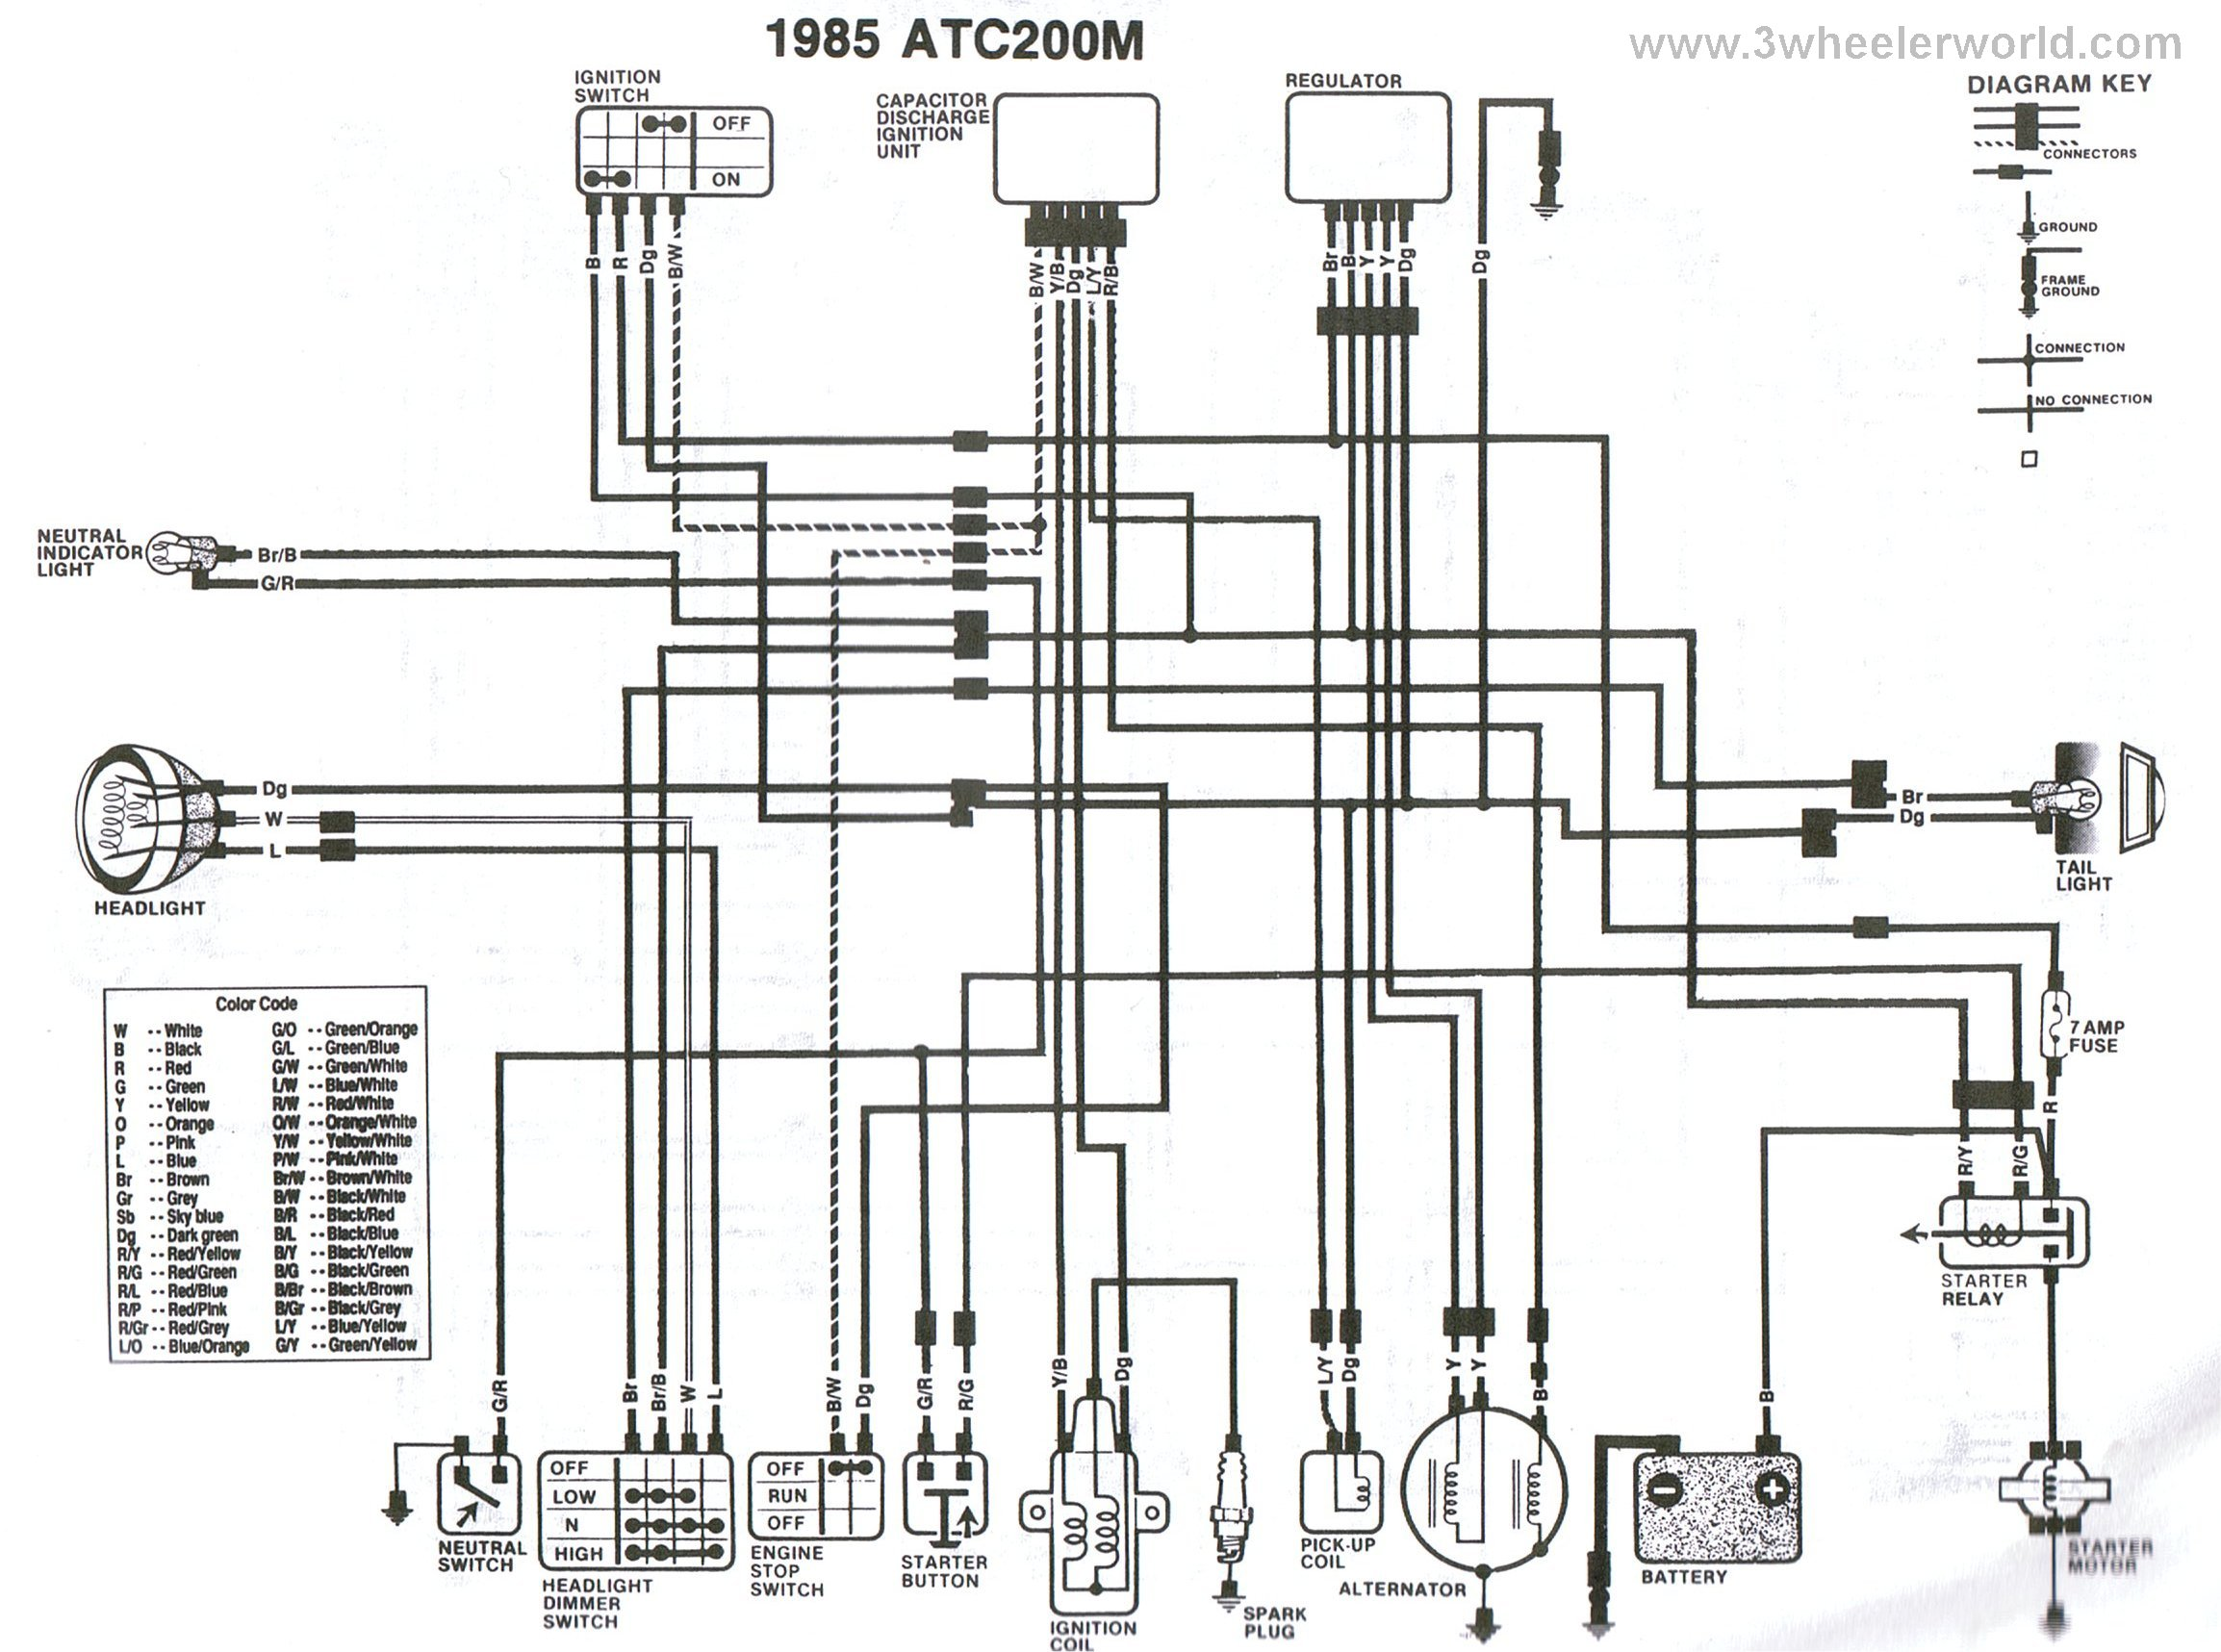 Wiring Diagram 1985 Honda 200m - wiring diagram on the net on